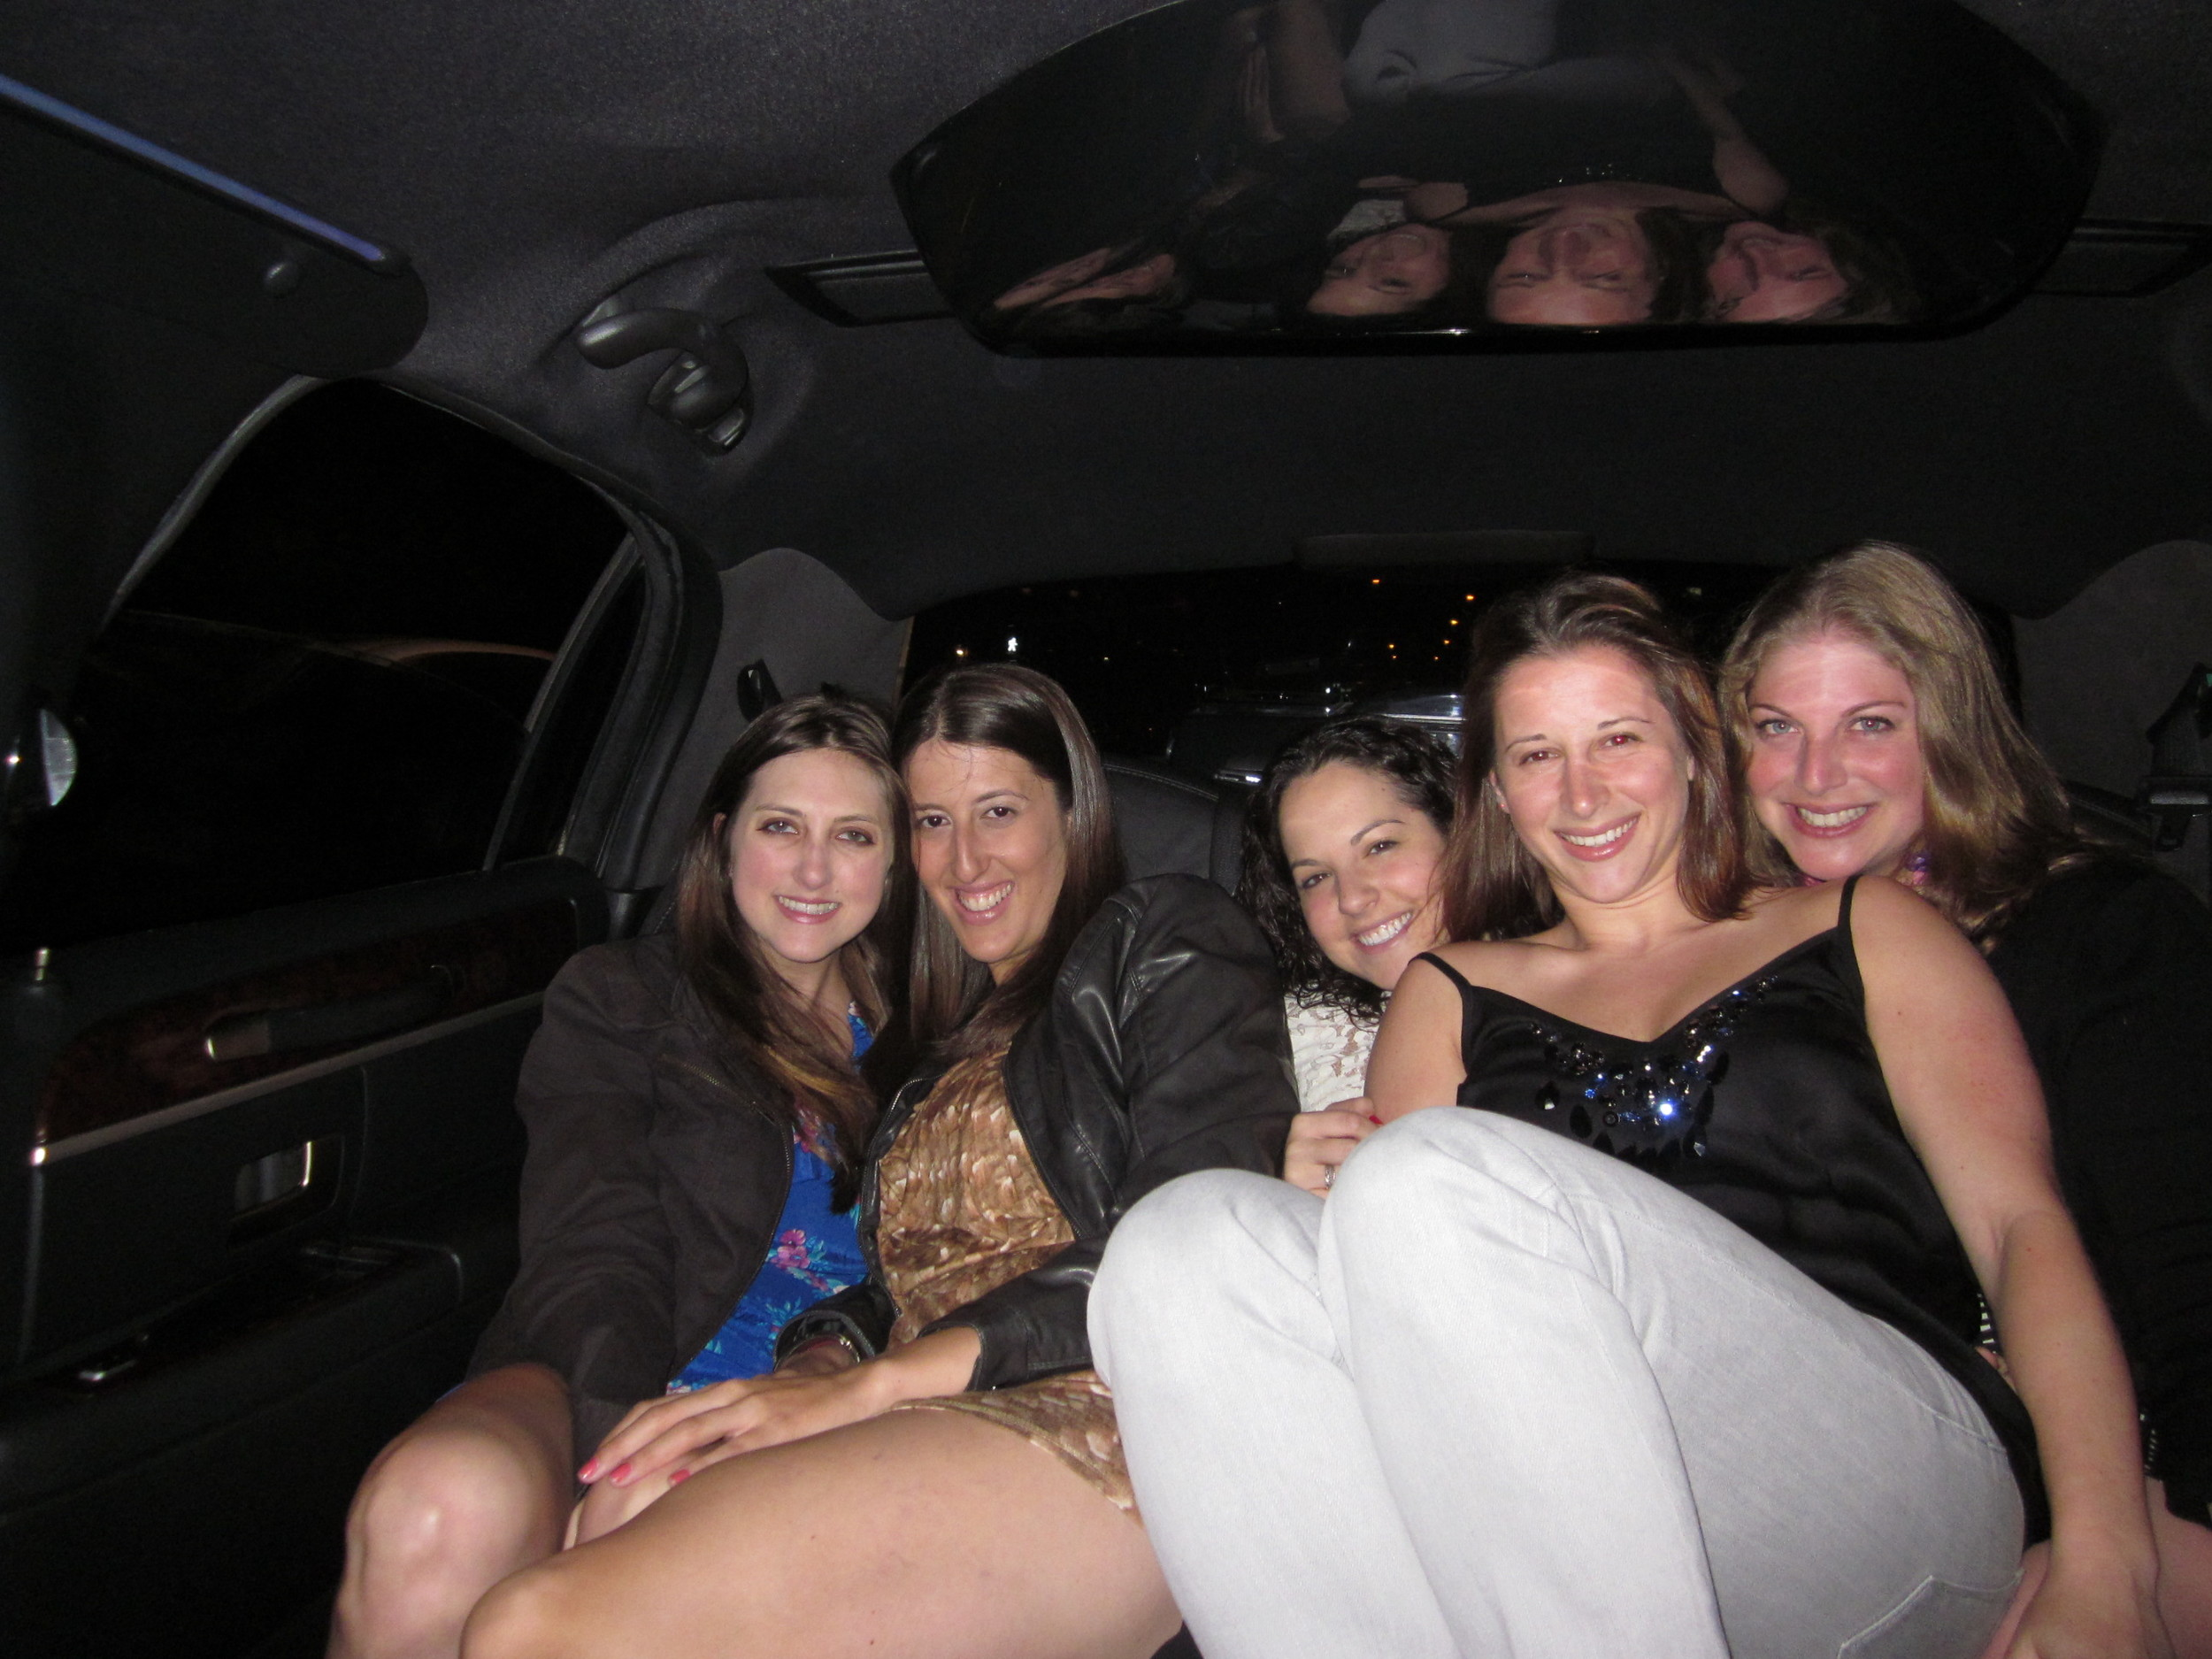 Marissa's birthday limo ride